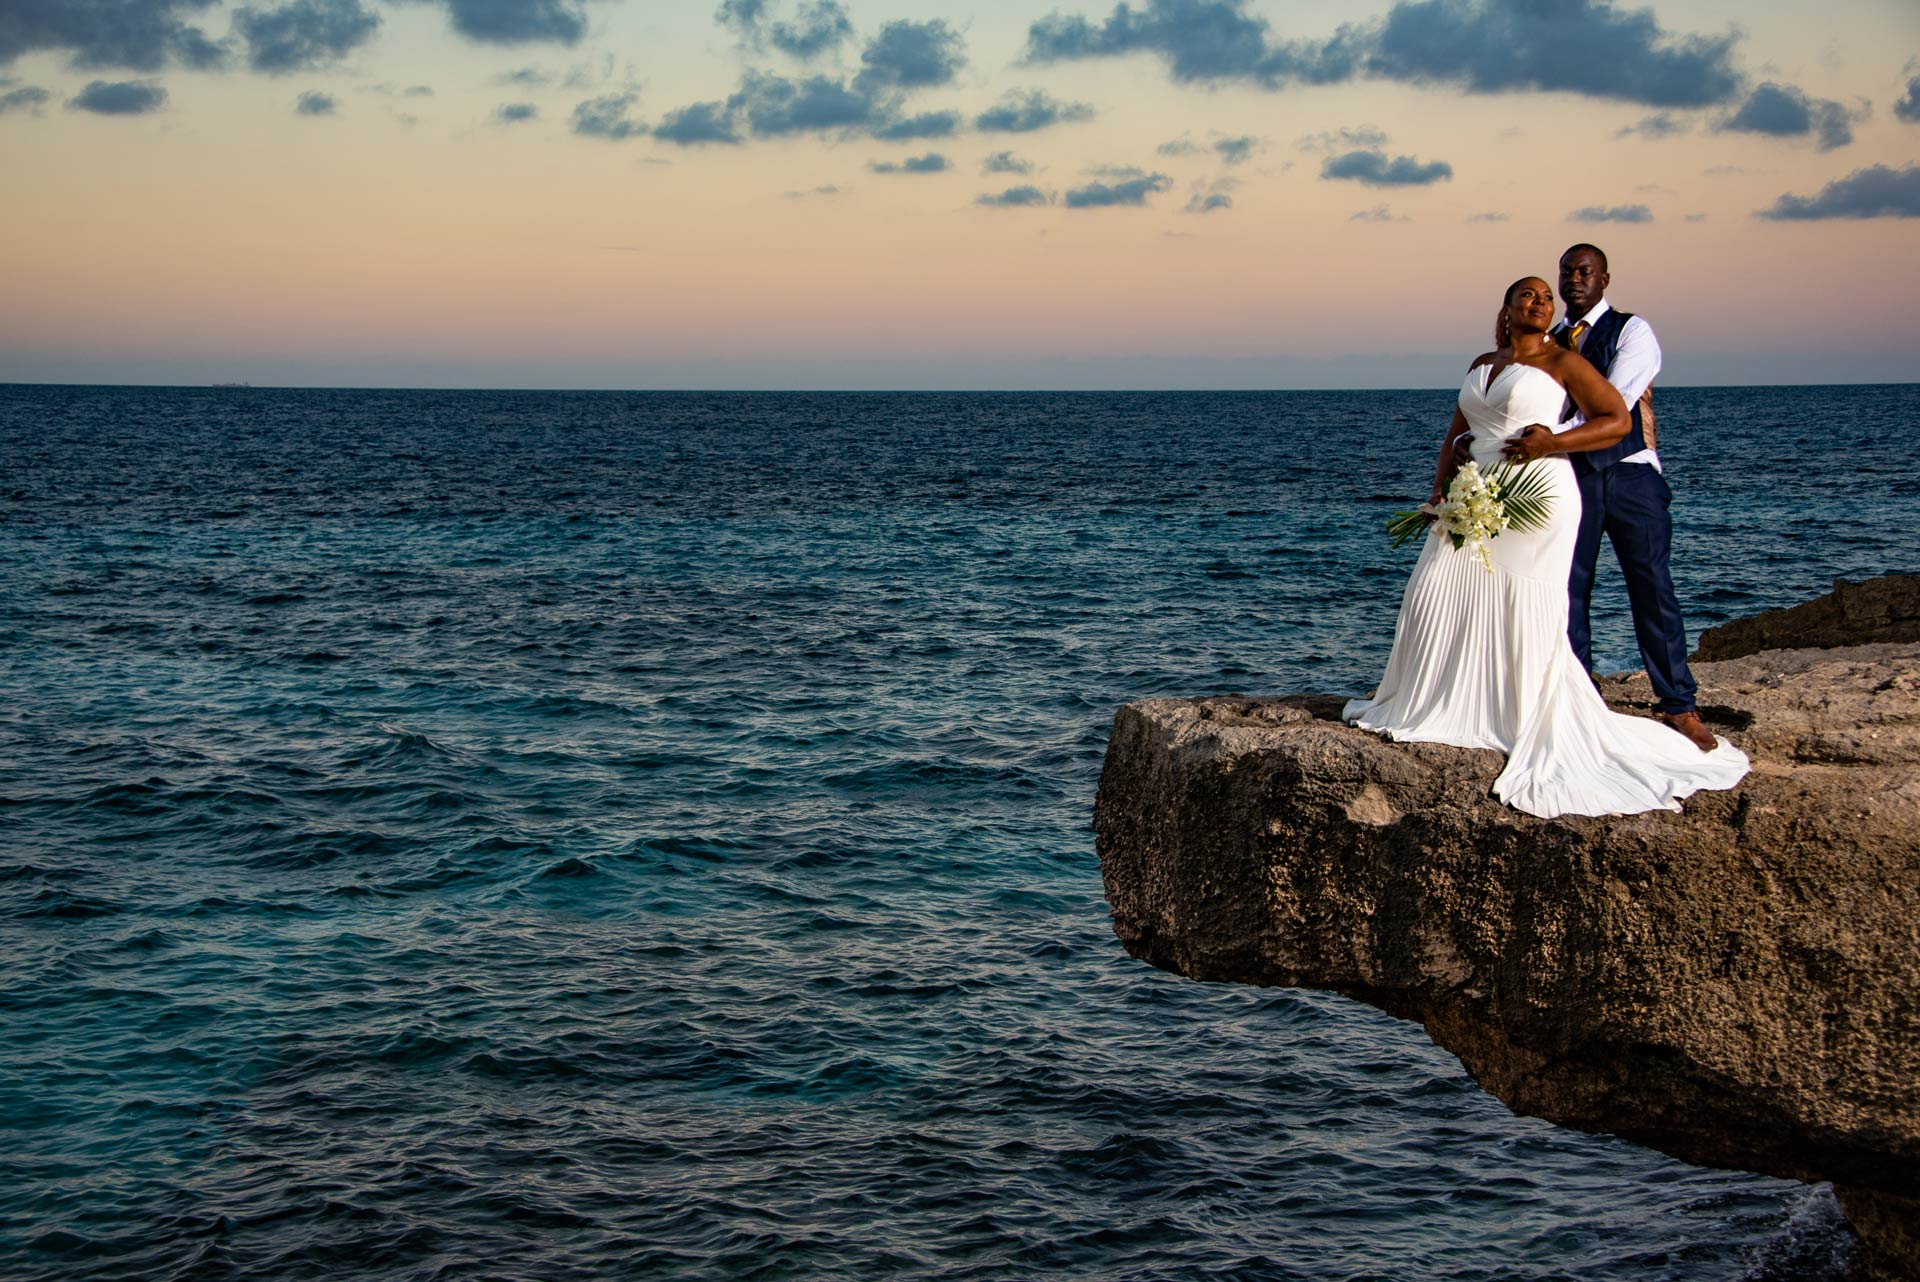 Award-Winning Wedding Planning for Sun-Seeking Couples Dreaming of a Heartfelt Celebration in the Caribbean